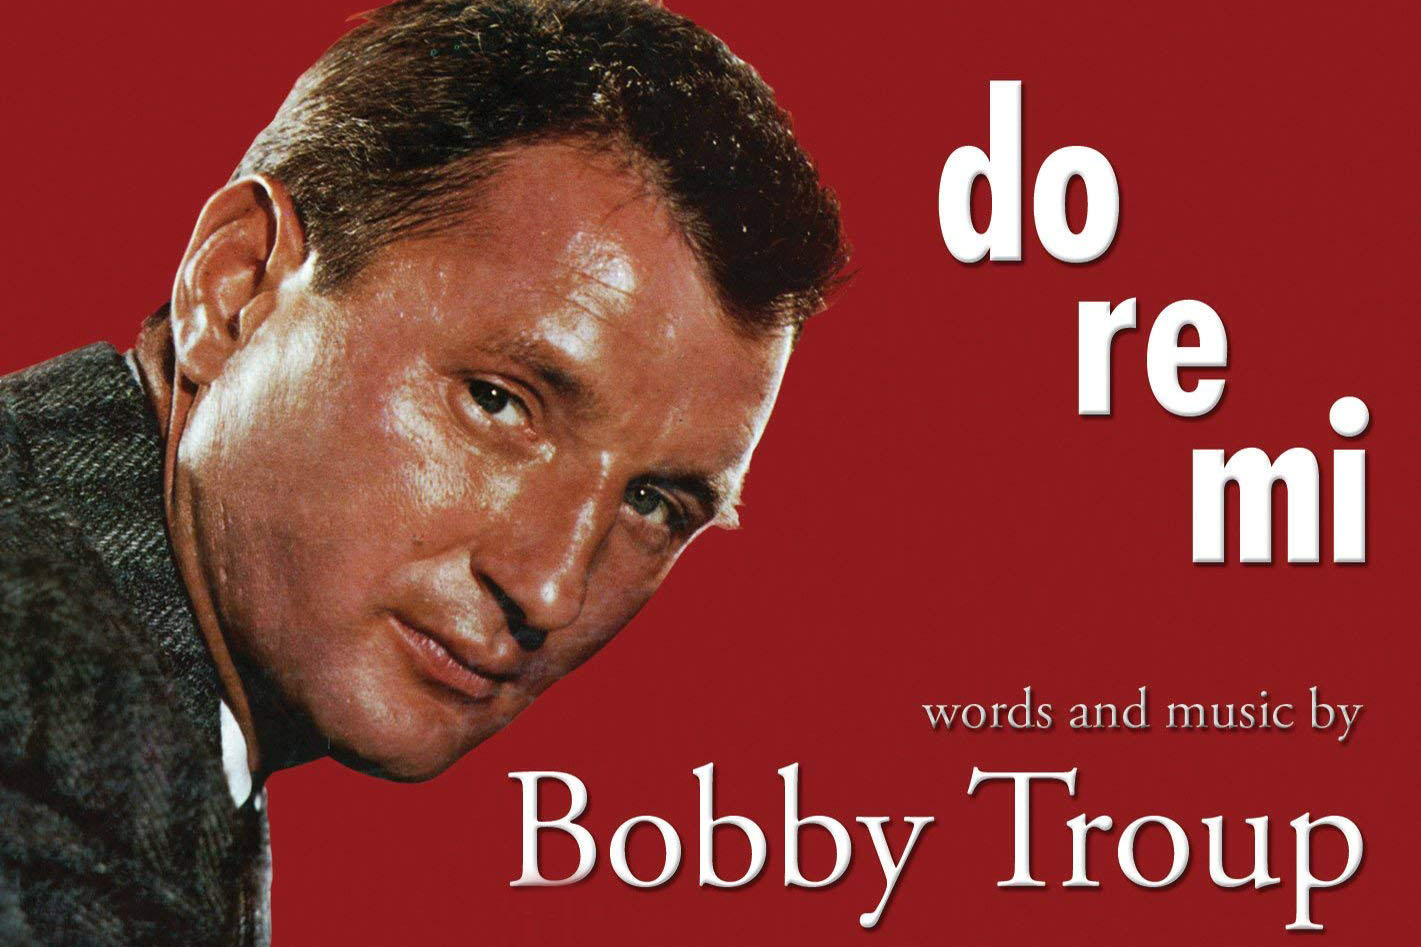 """Bobby Troup's 1956 album """"Do Re Mi"""" for Liberty Records features the songwriter performing his own songs."""